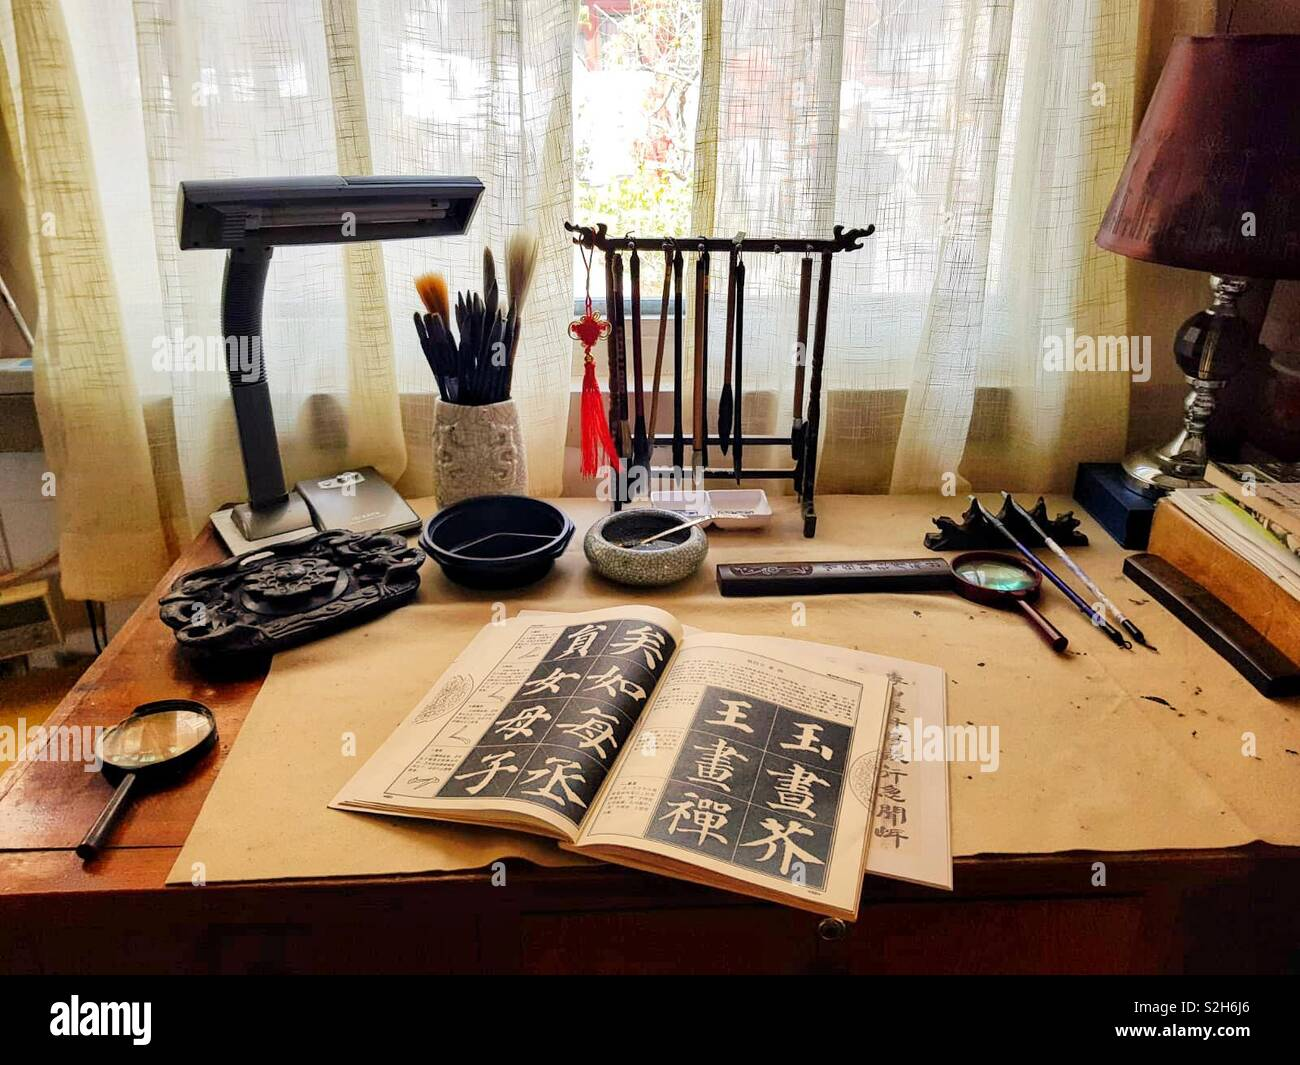 A traditional Chinese calligraphy desk - Stock Image